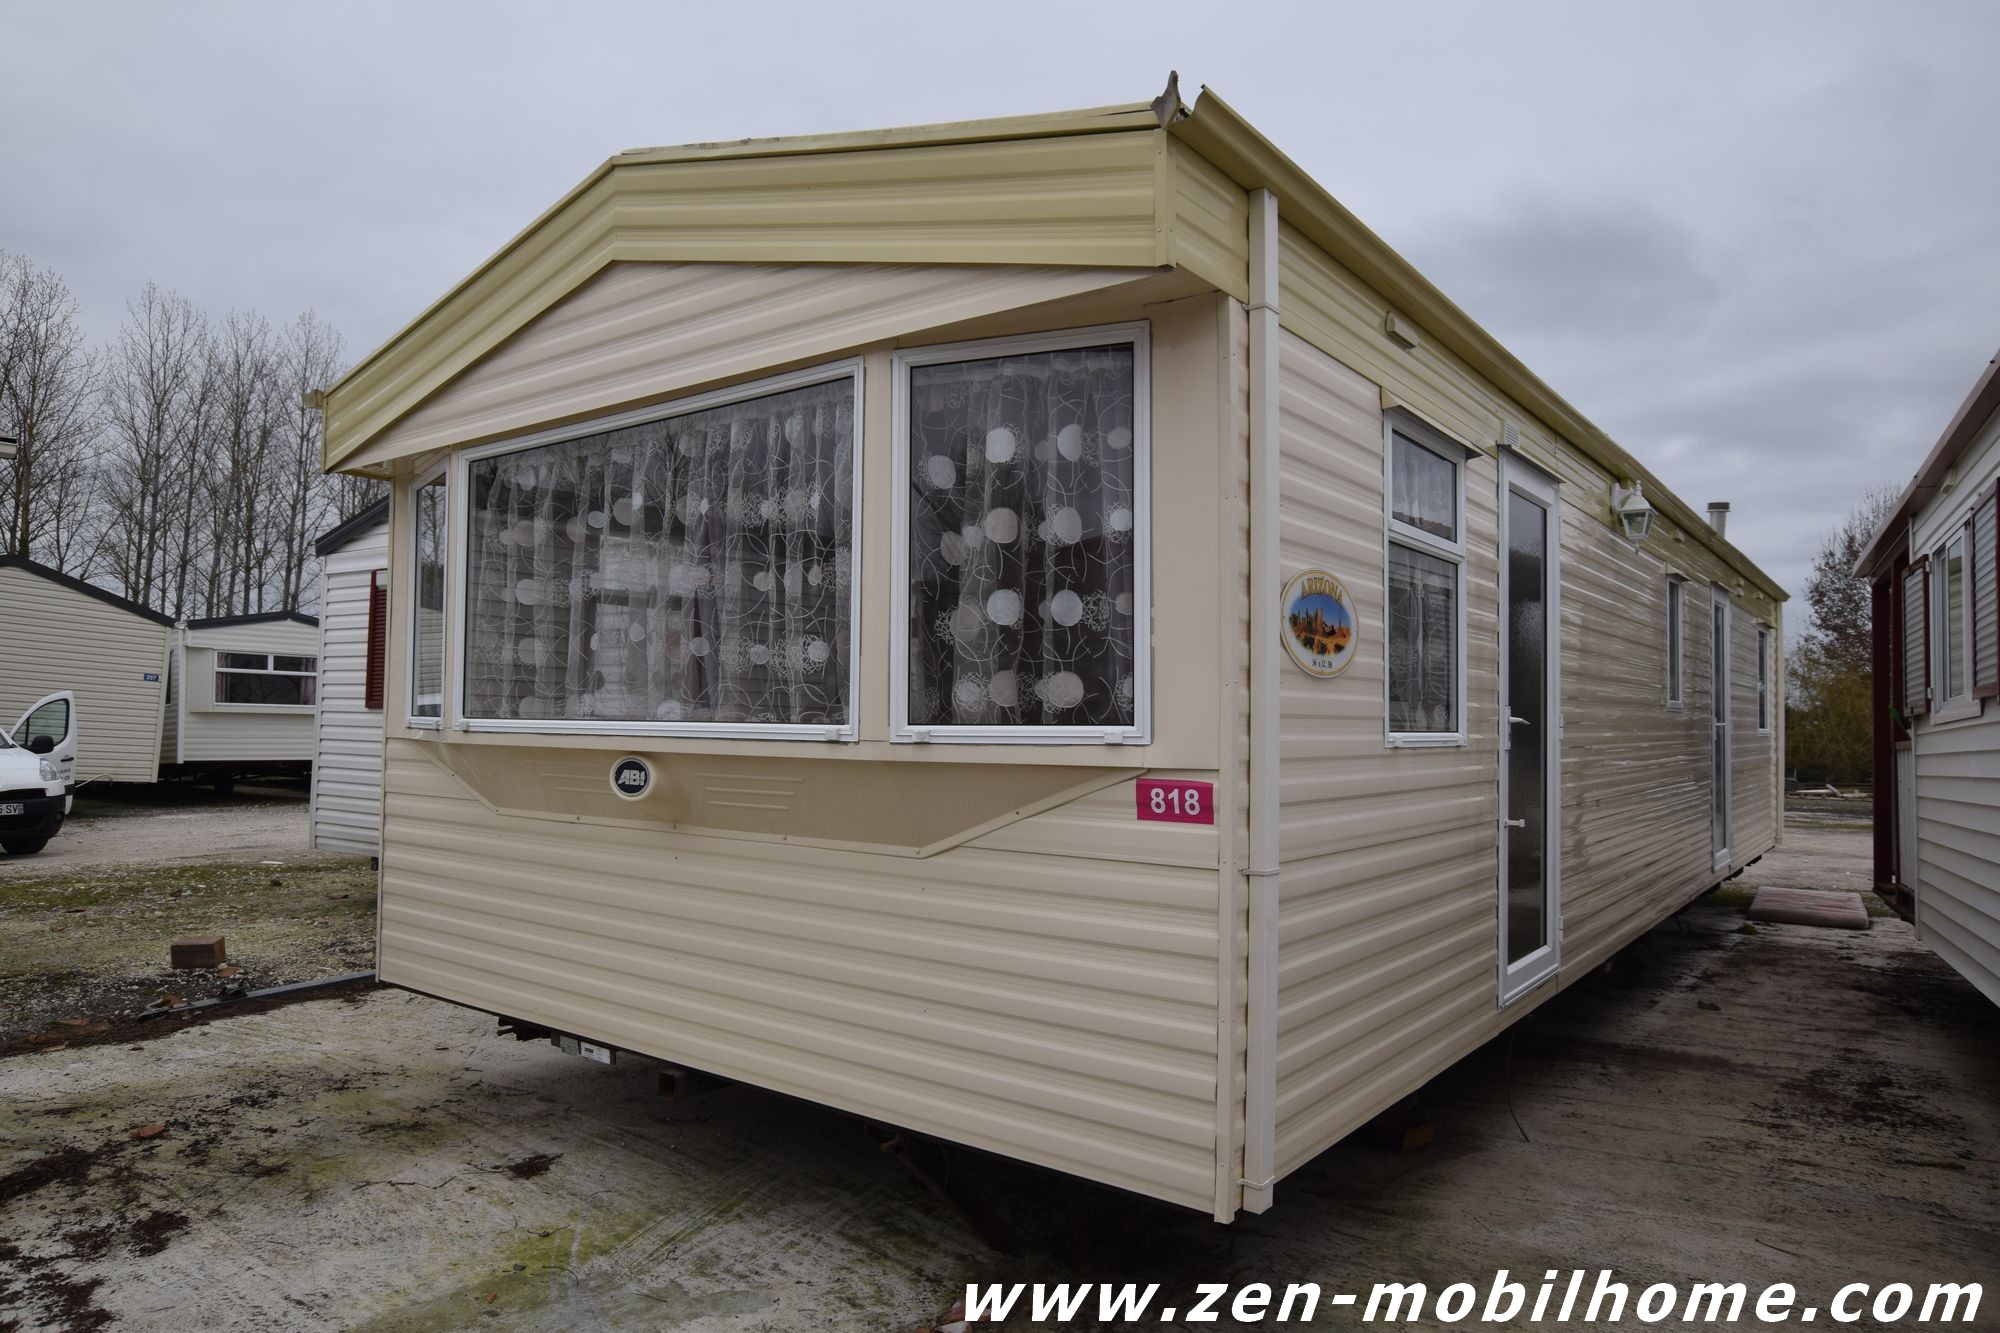 Mobil home panoramique 3 chambres occasion